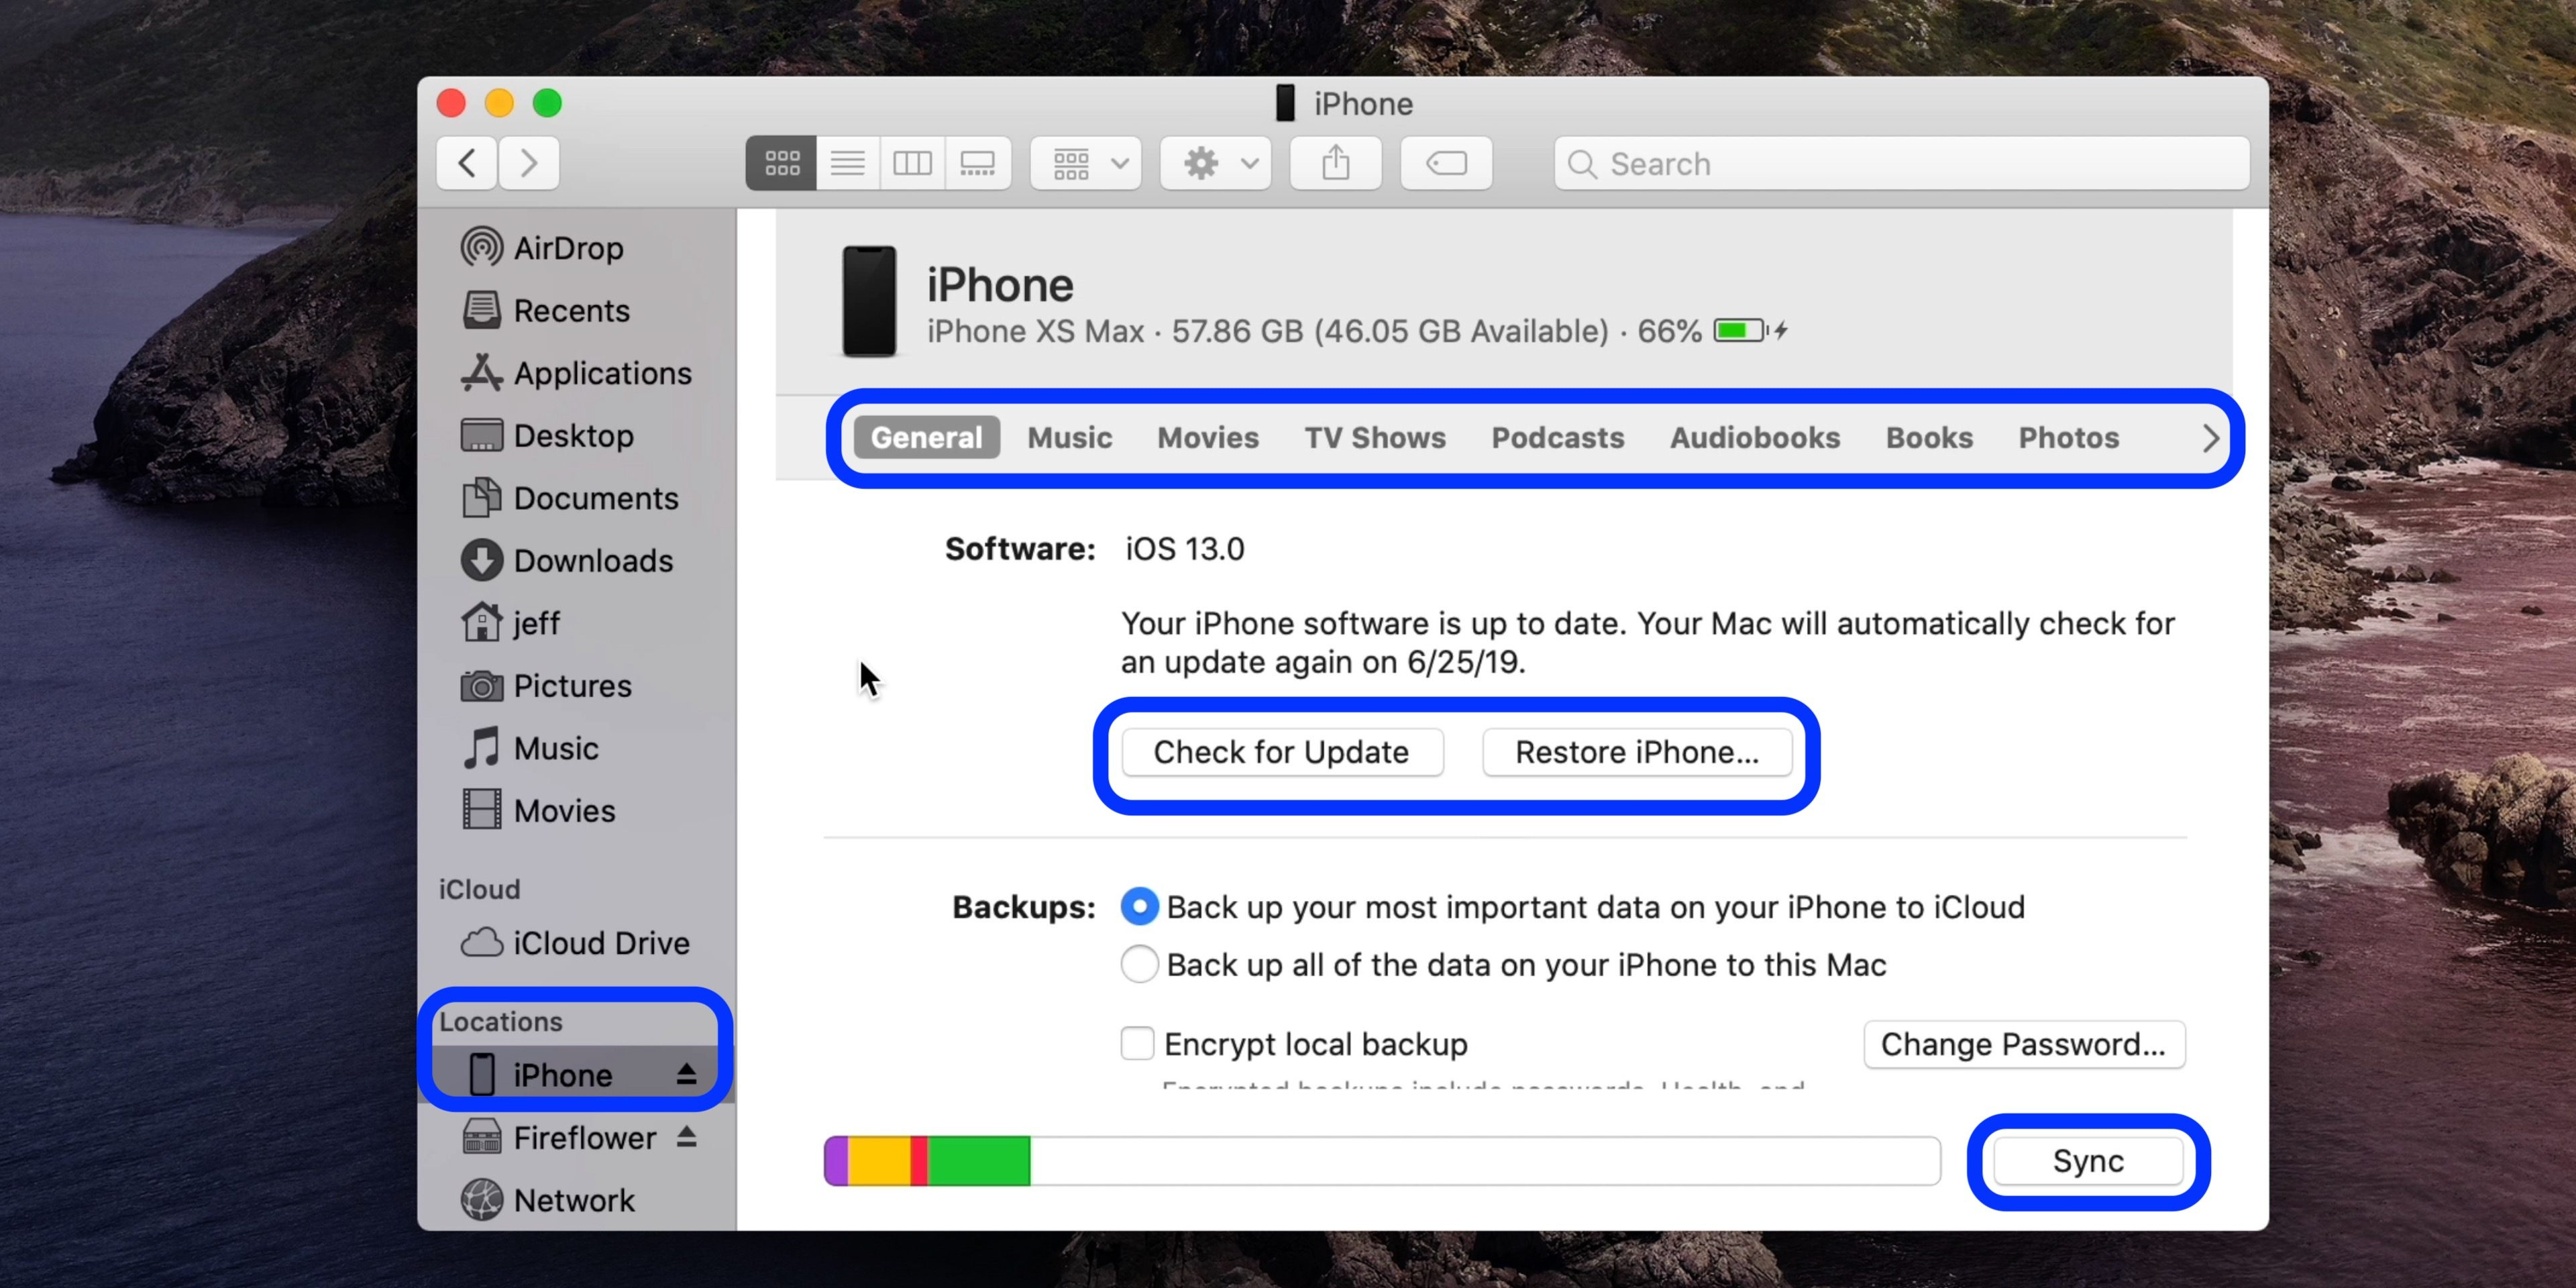 "<span href=""https://9to5mac.com/2019/10/08/how-to-sync-iphone-mac-macos-catalina-without-itunes/"">Cómo sincronizar el iPhone y el iPad a tu Mac en macOS Catalina sin iTunes</a>"